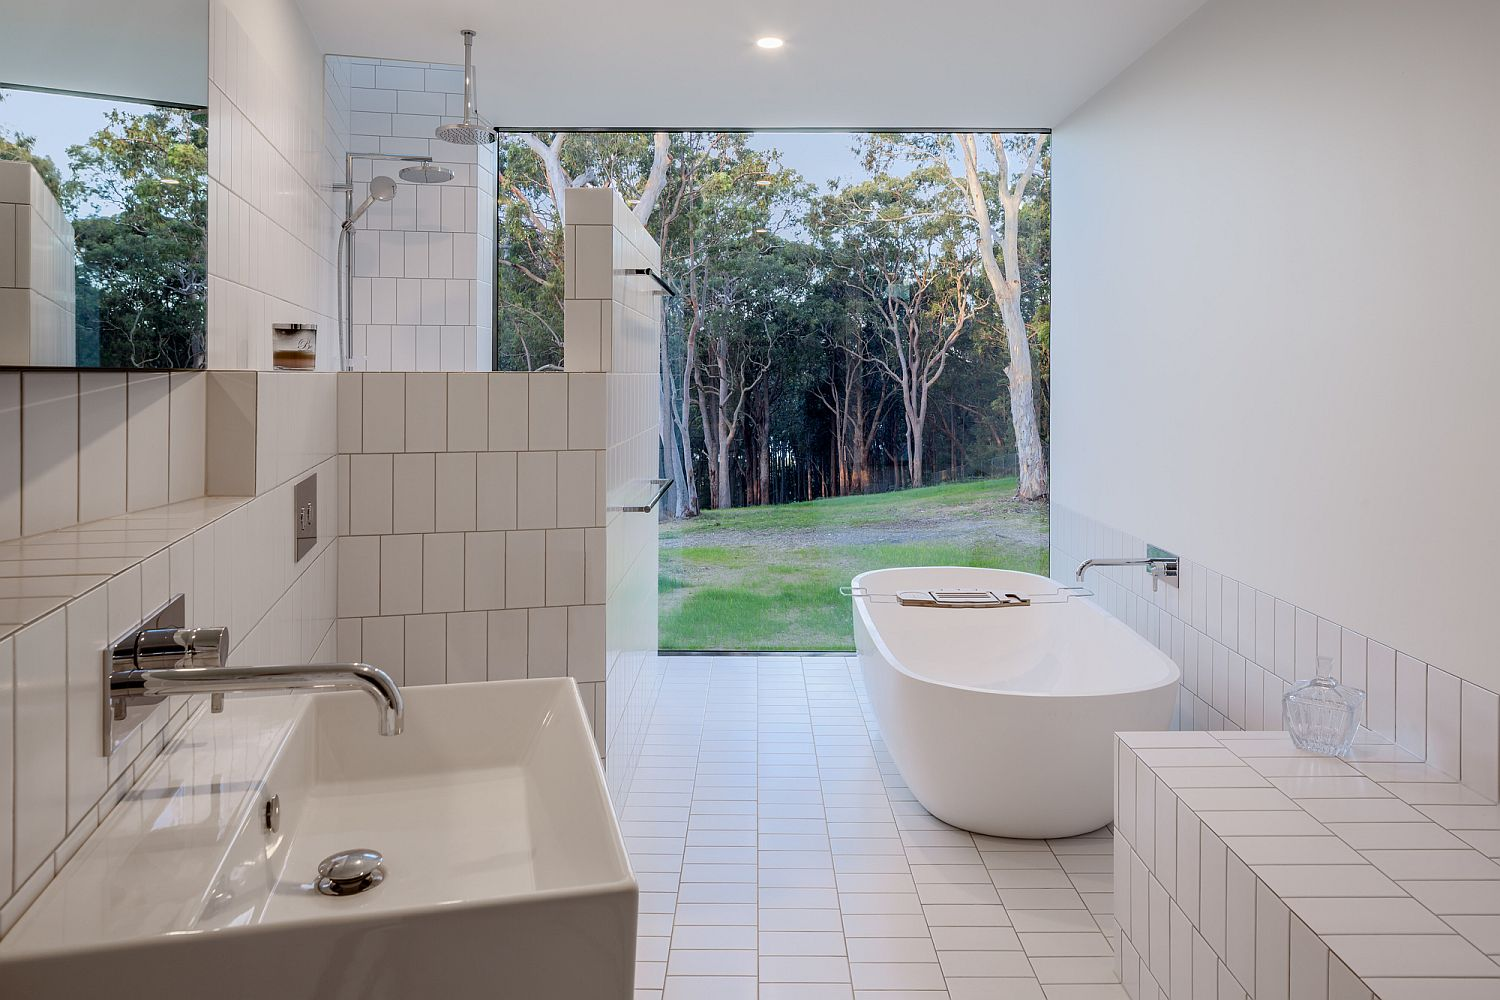 All-white bathroom connected to the garden outside